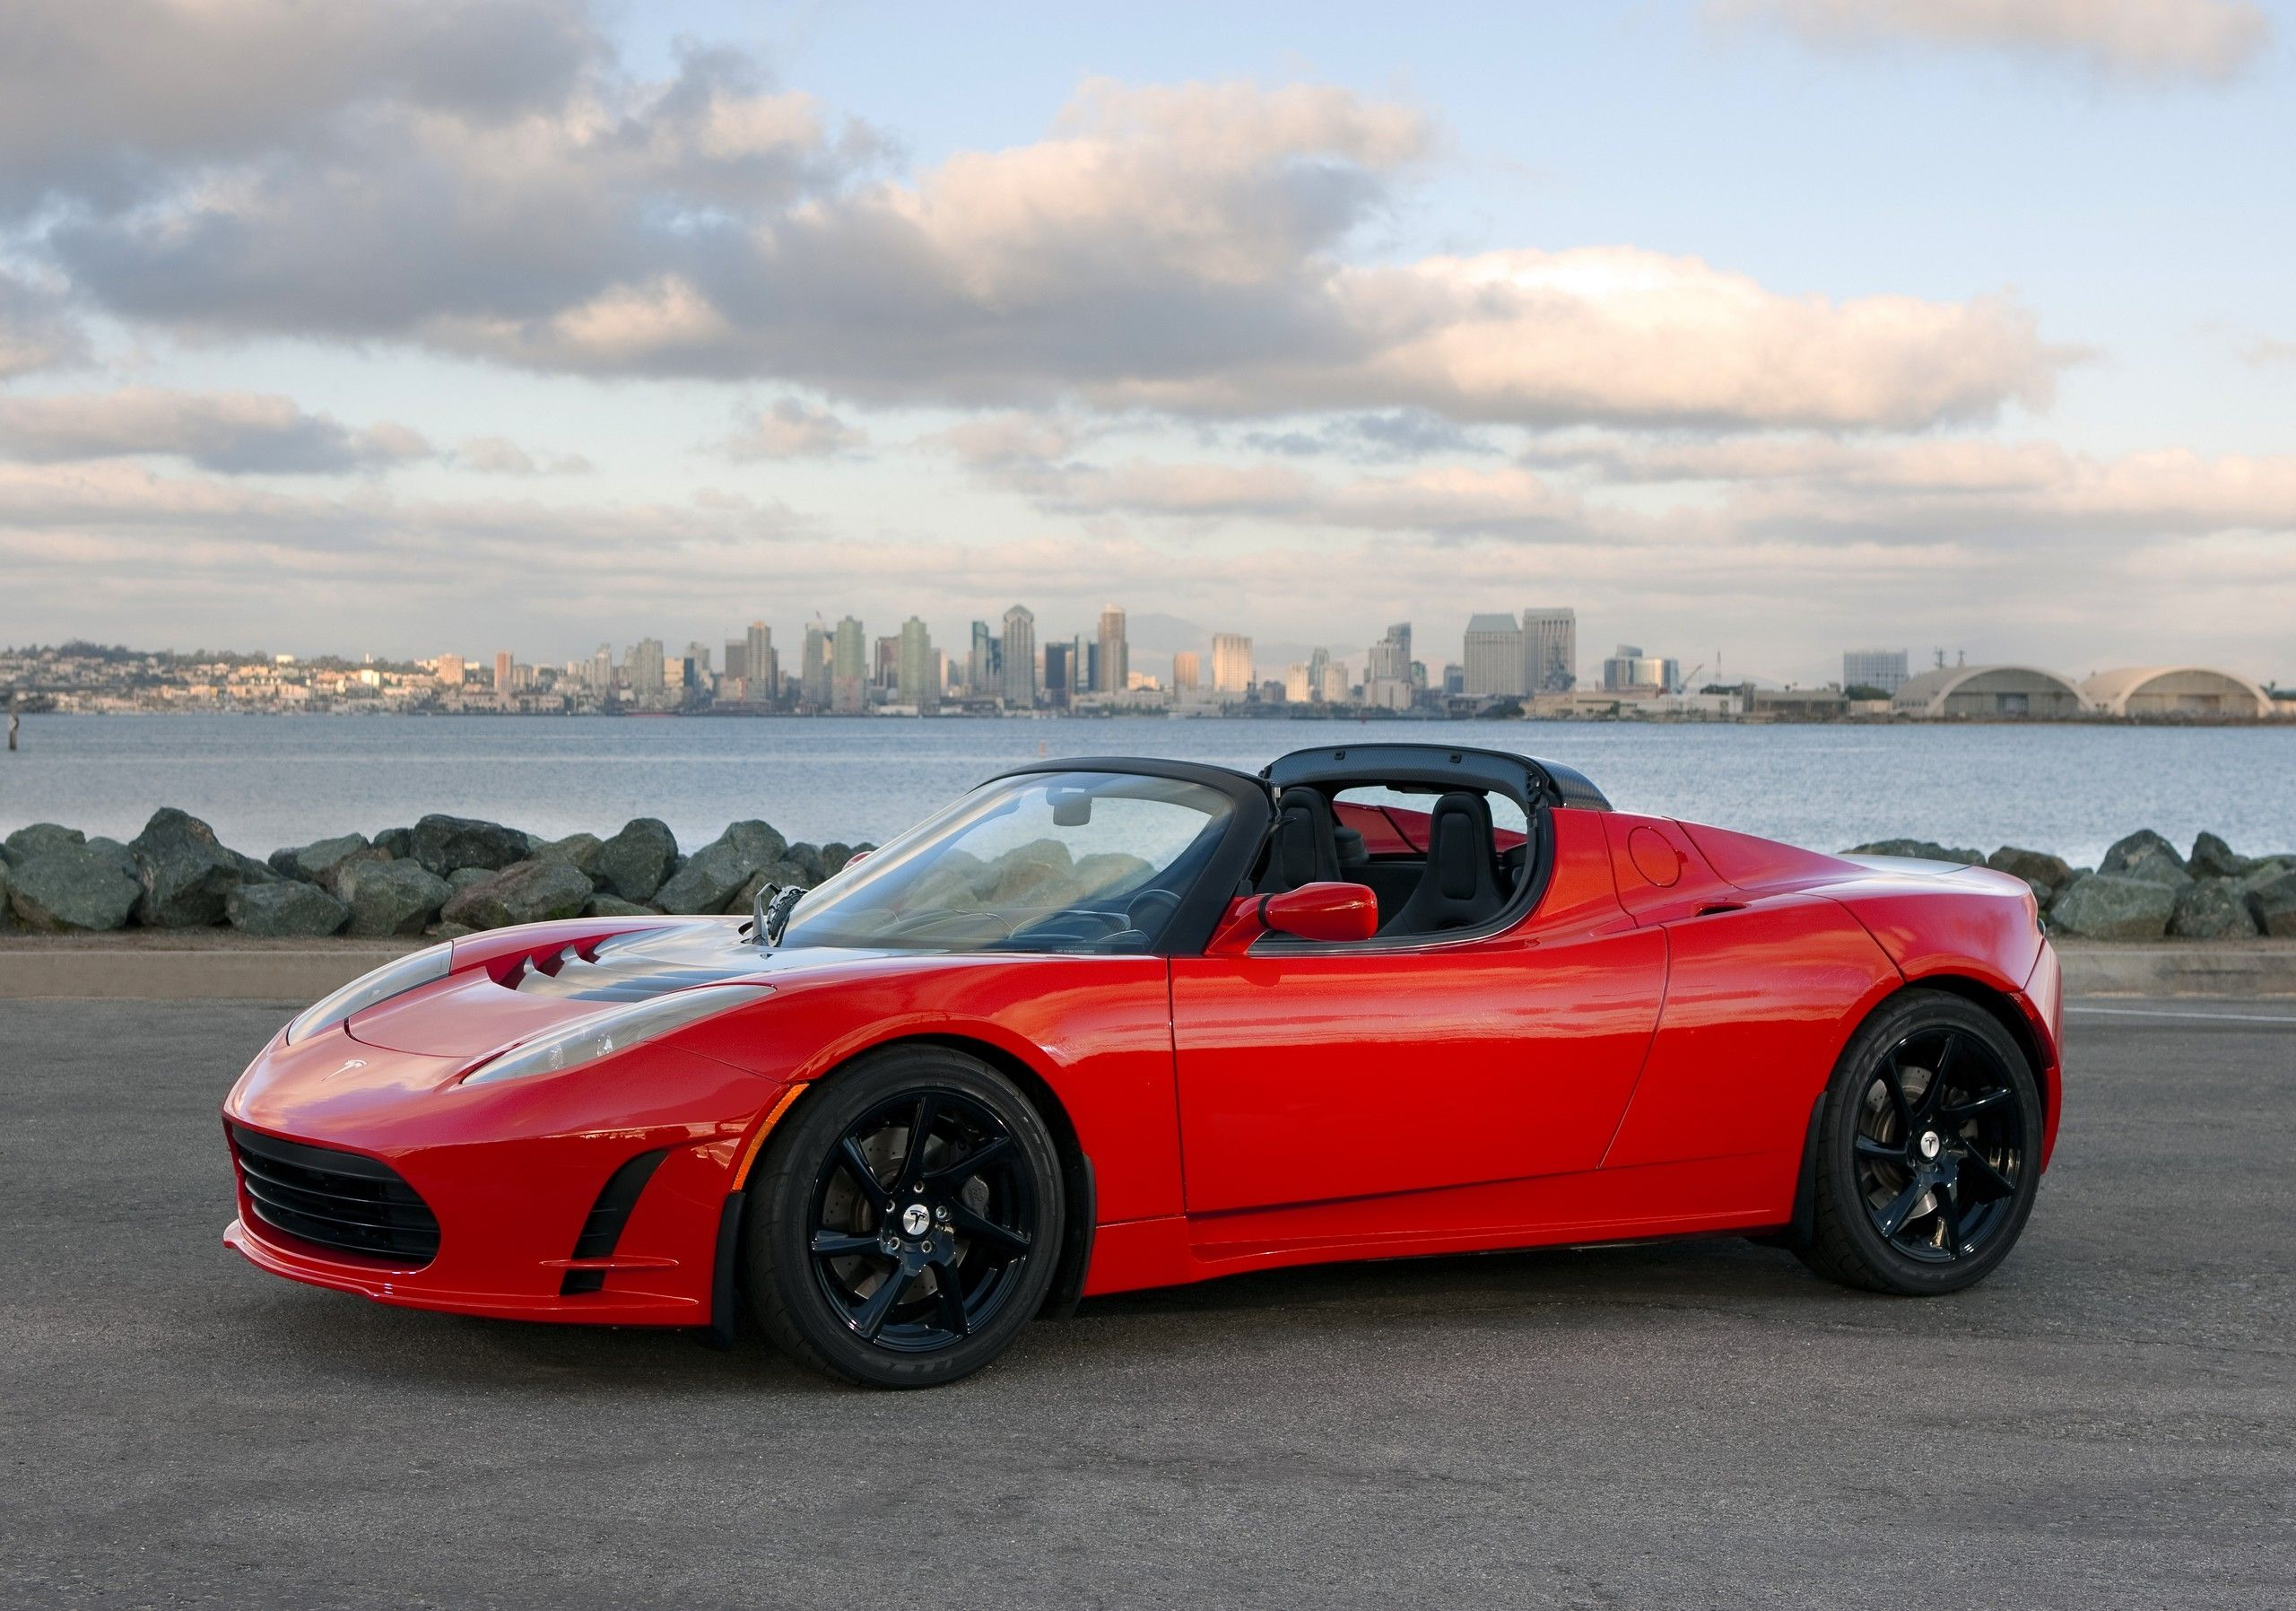 tesla roadster cars wallpapers - tesla hd wallpapers and backgrounds